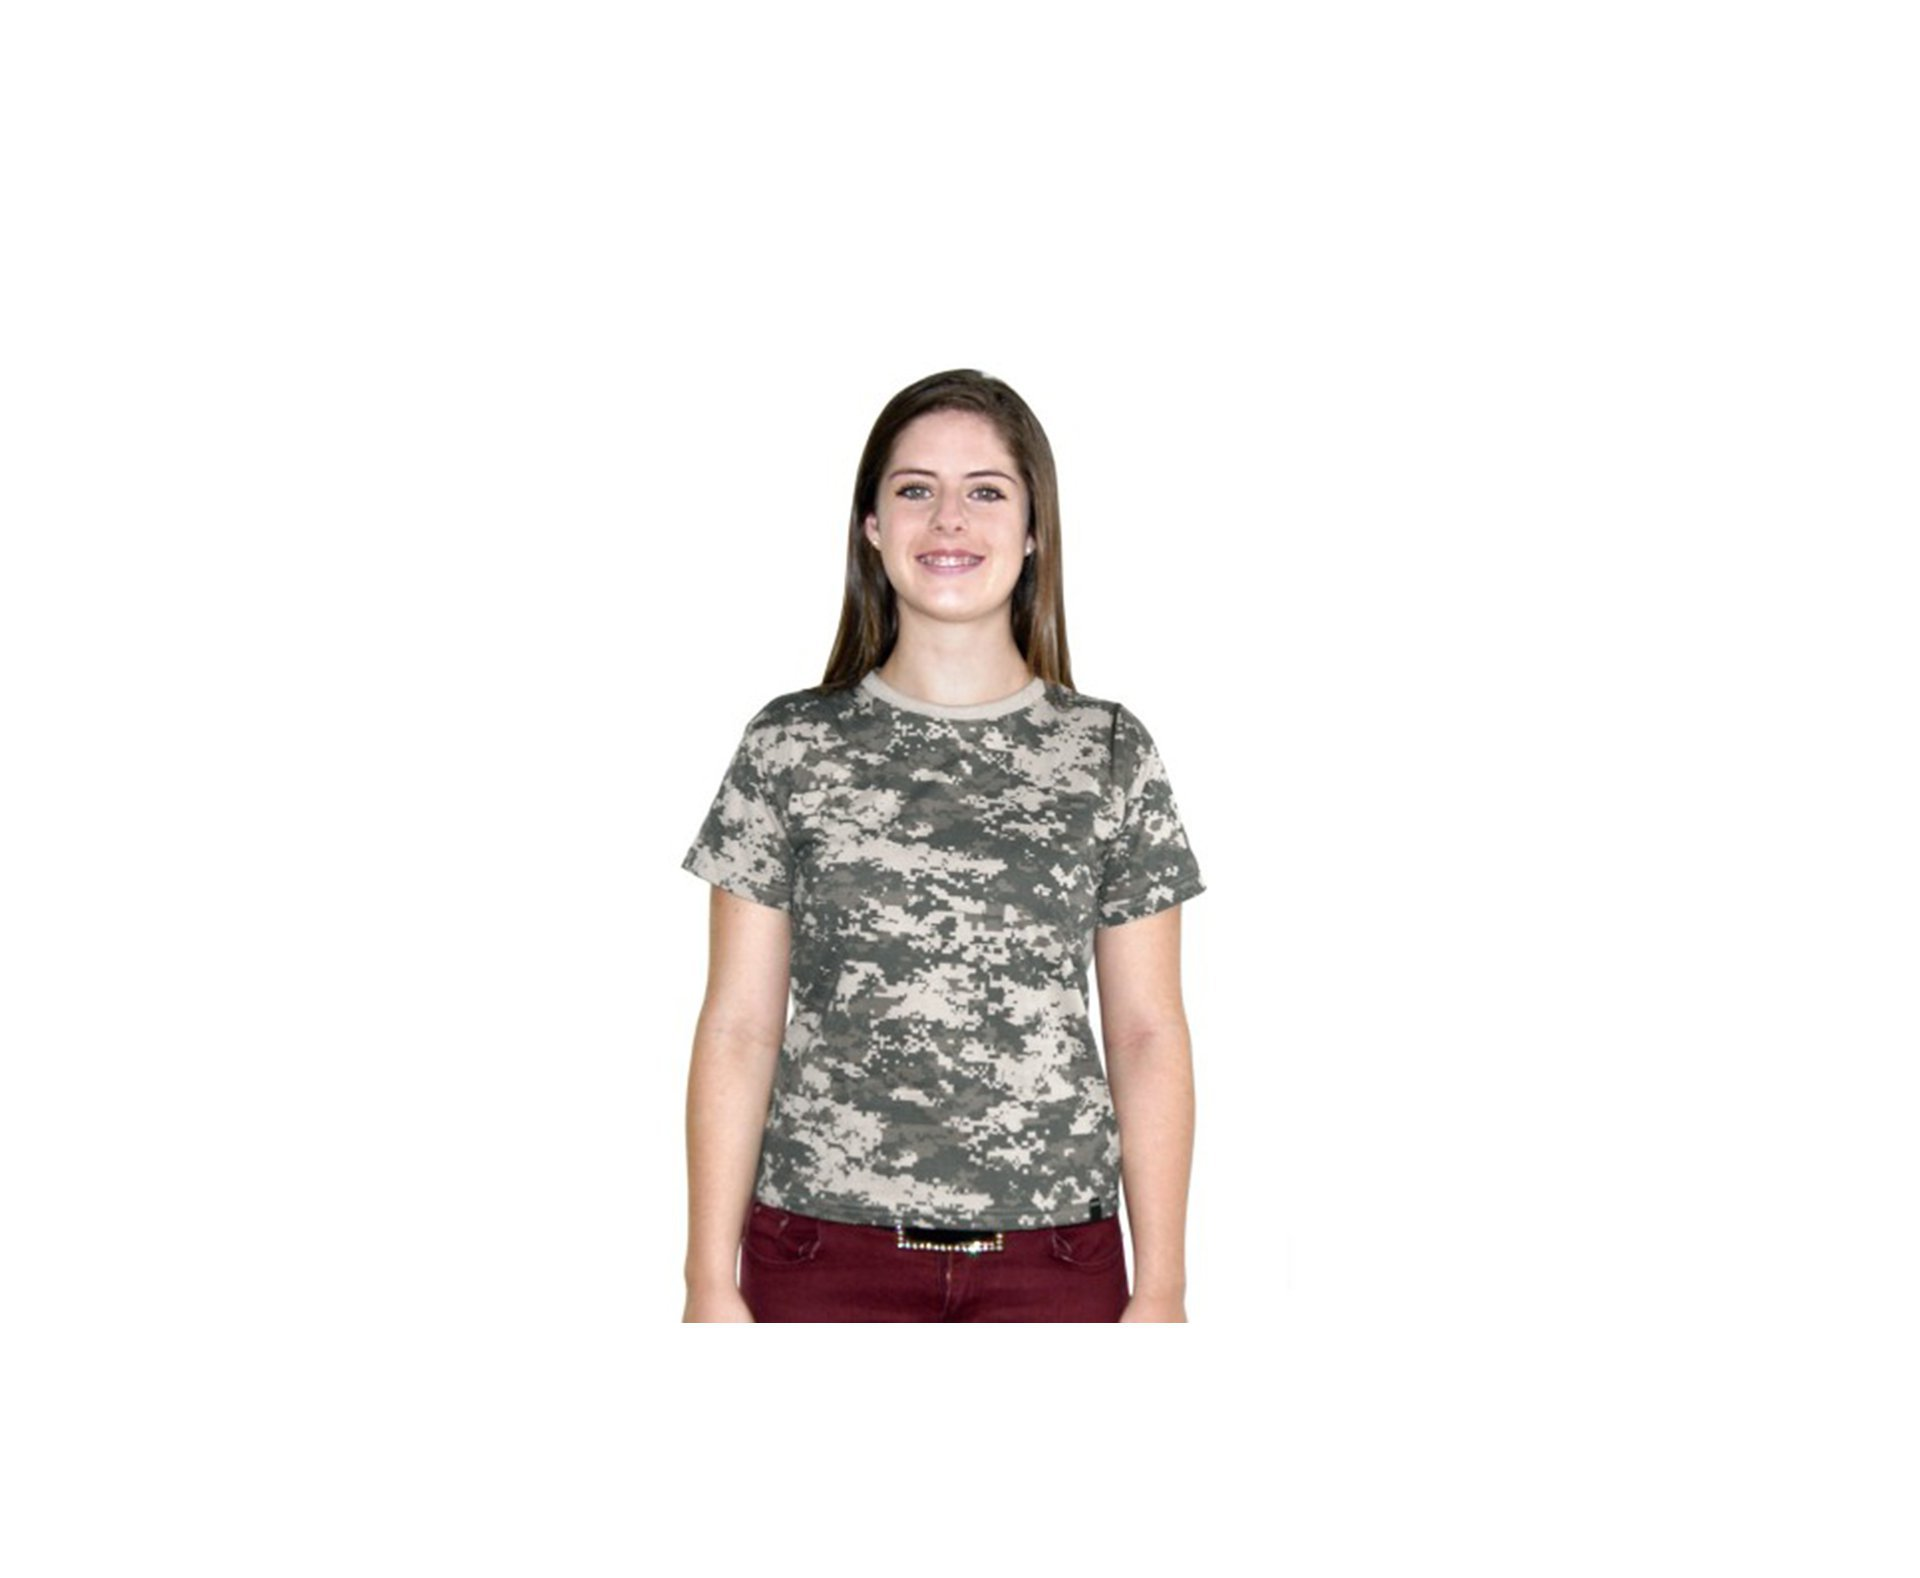 Baby Look Camuflada Digital Army Combaty Camuflado Digital - Bravo